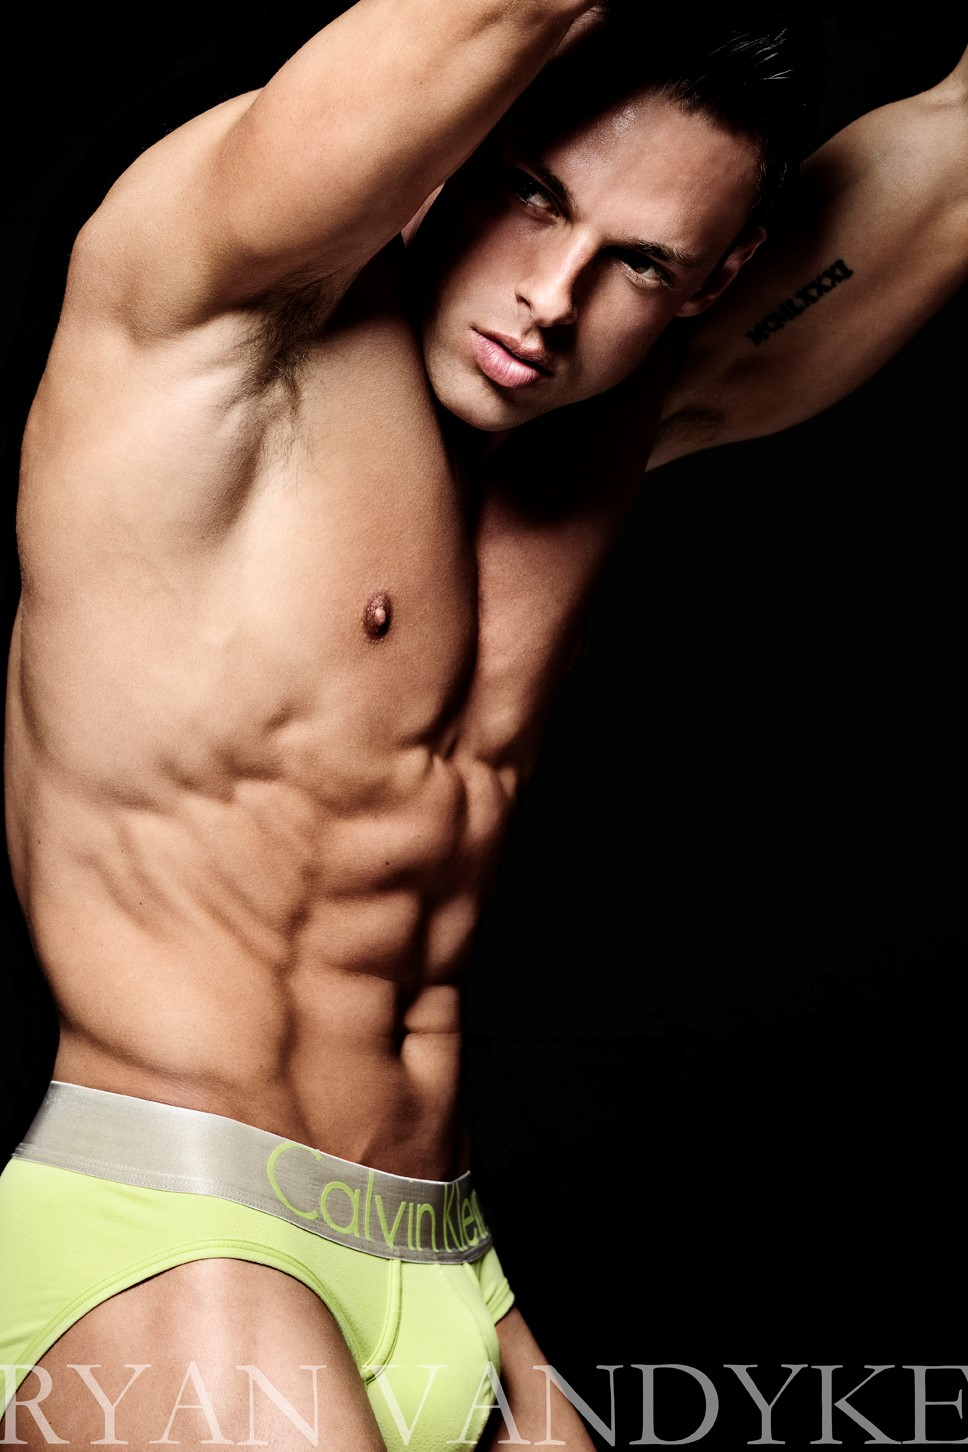 Ryan-Vandyke-fitness-underwear-shot